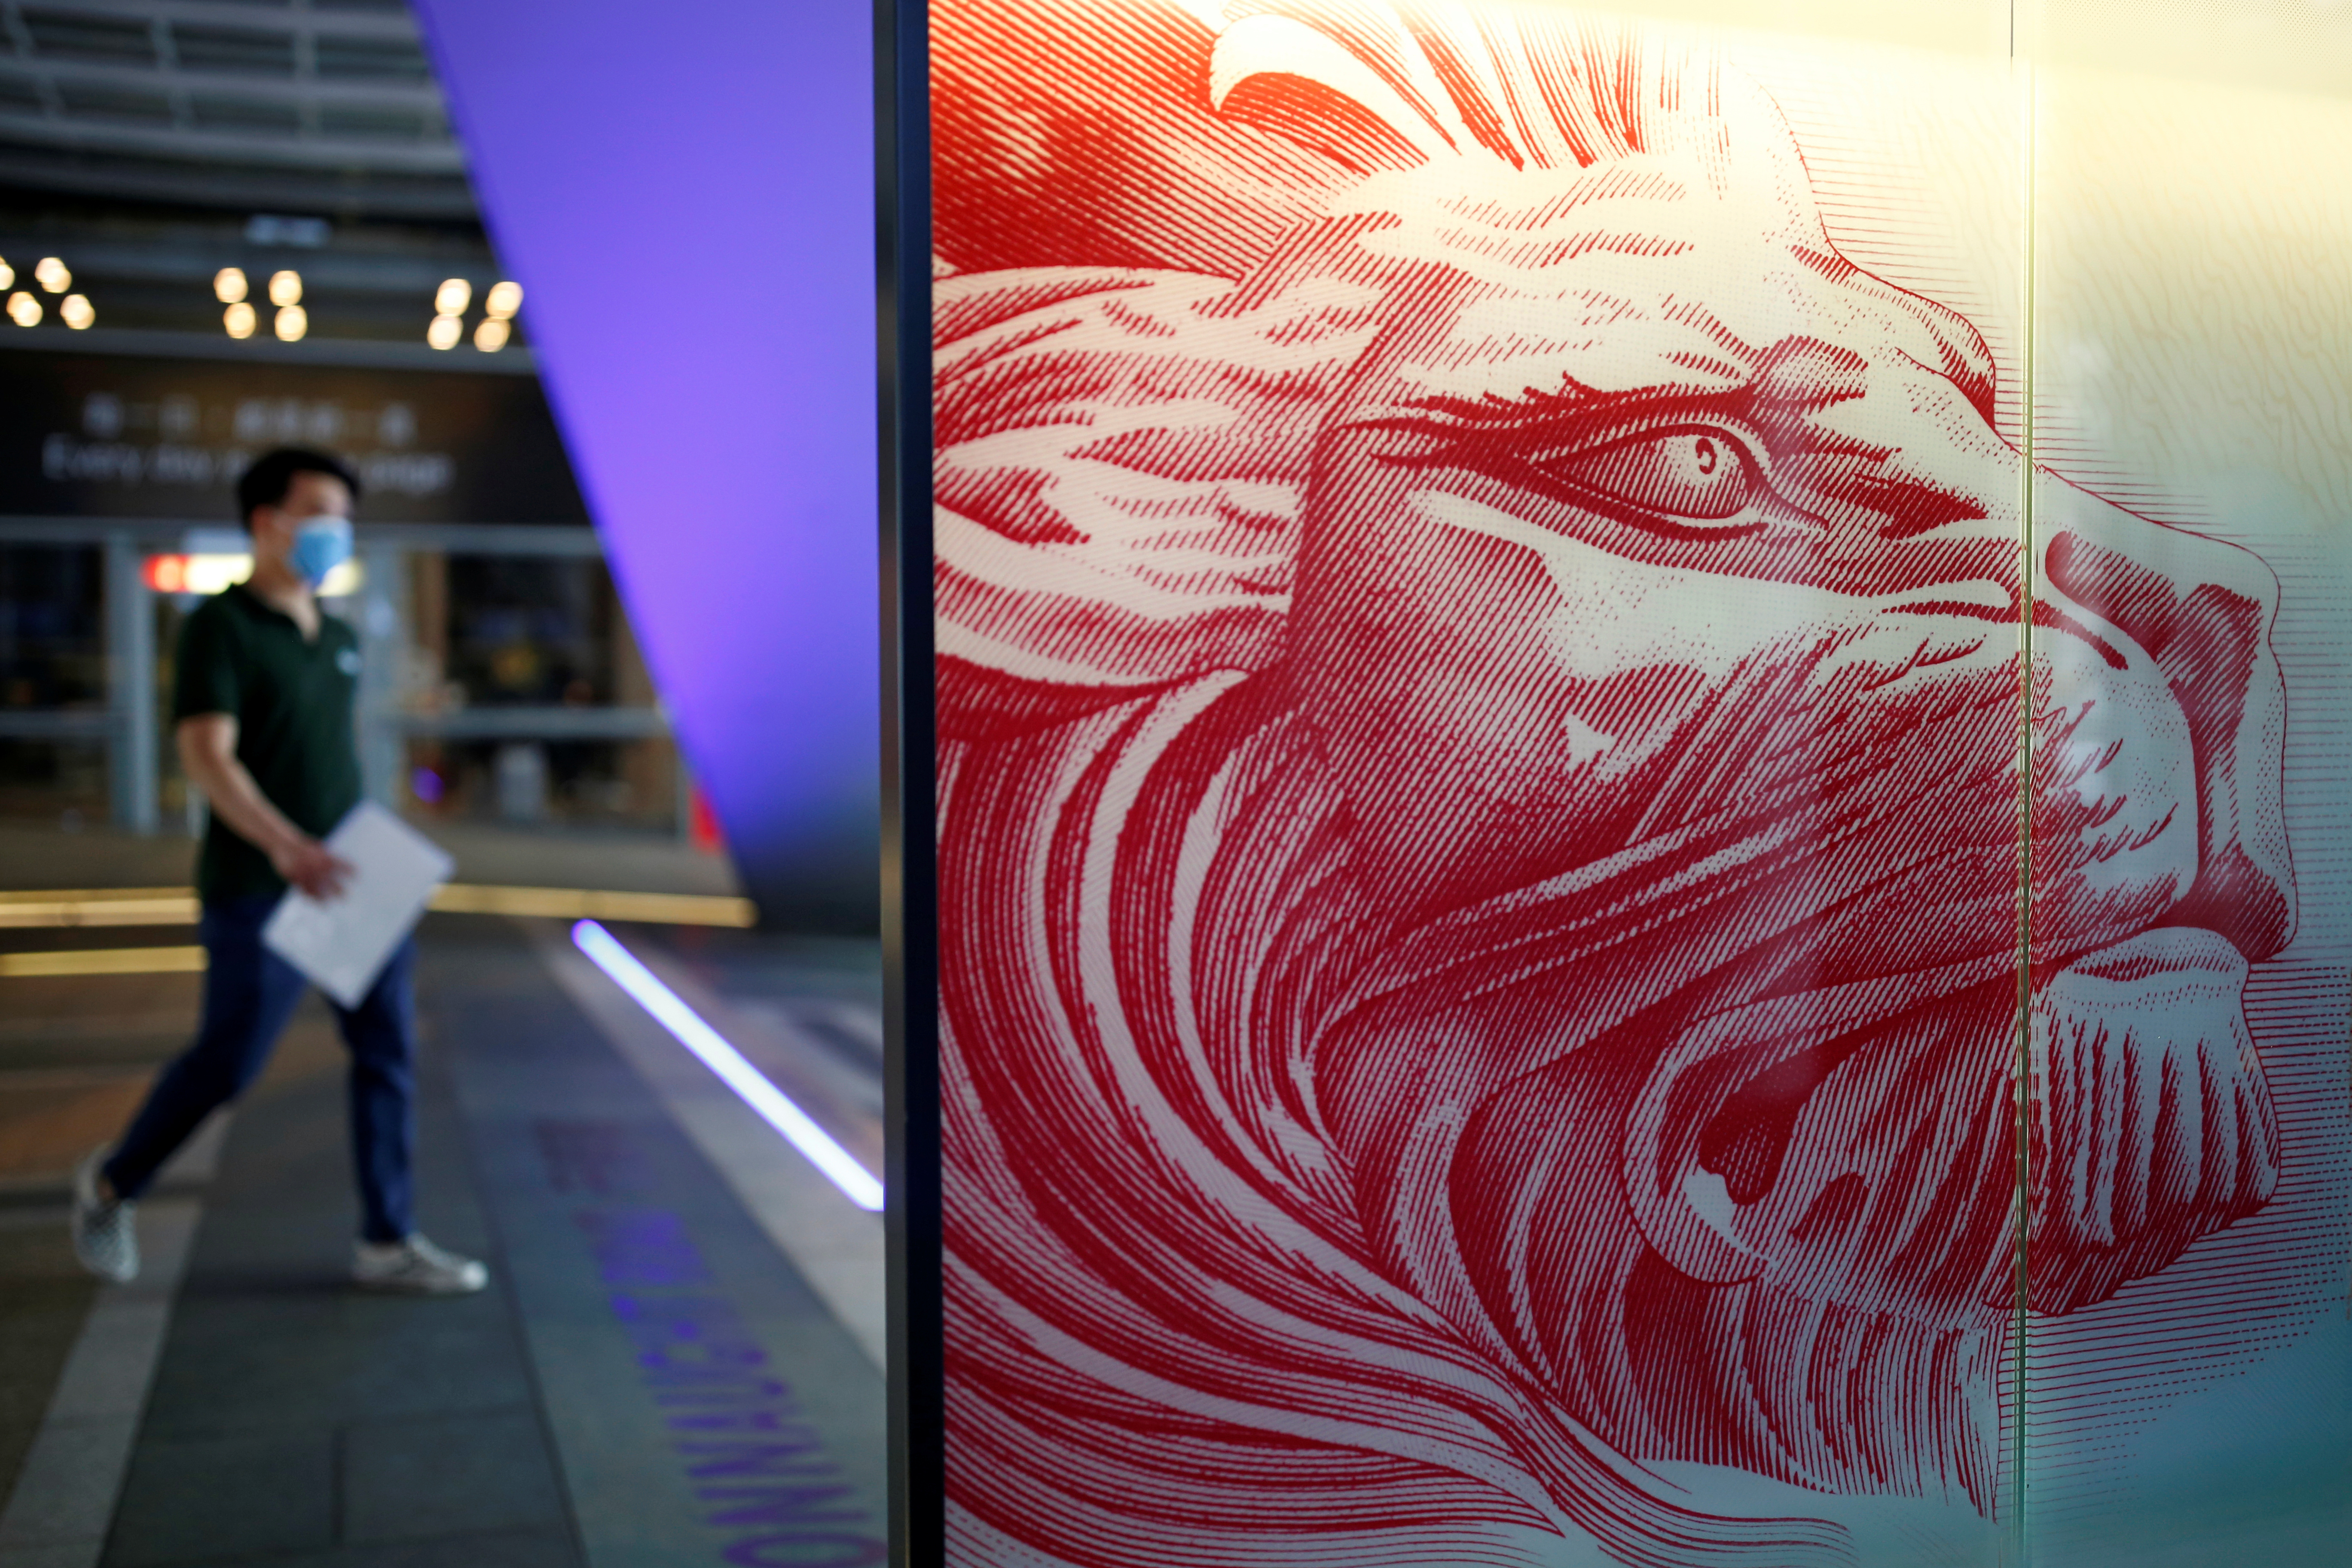 A pedestrian walks past a panel showing the HSBC lion at its headquarters at the financial Central district in Hong Kong, China August 4, 2020. REUTERS/Tyrone Siu - RC207I96XPCZ